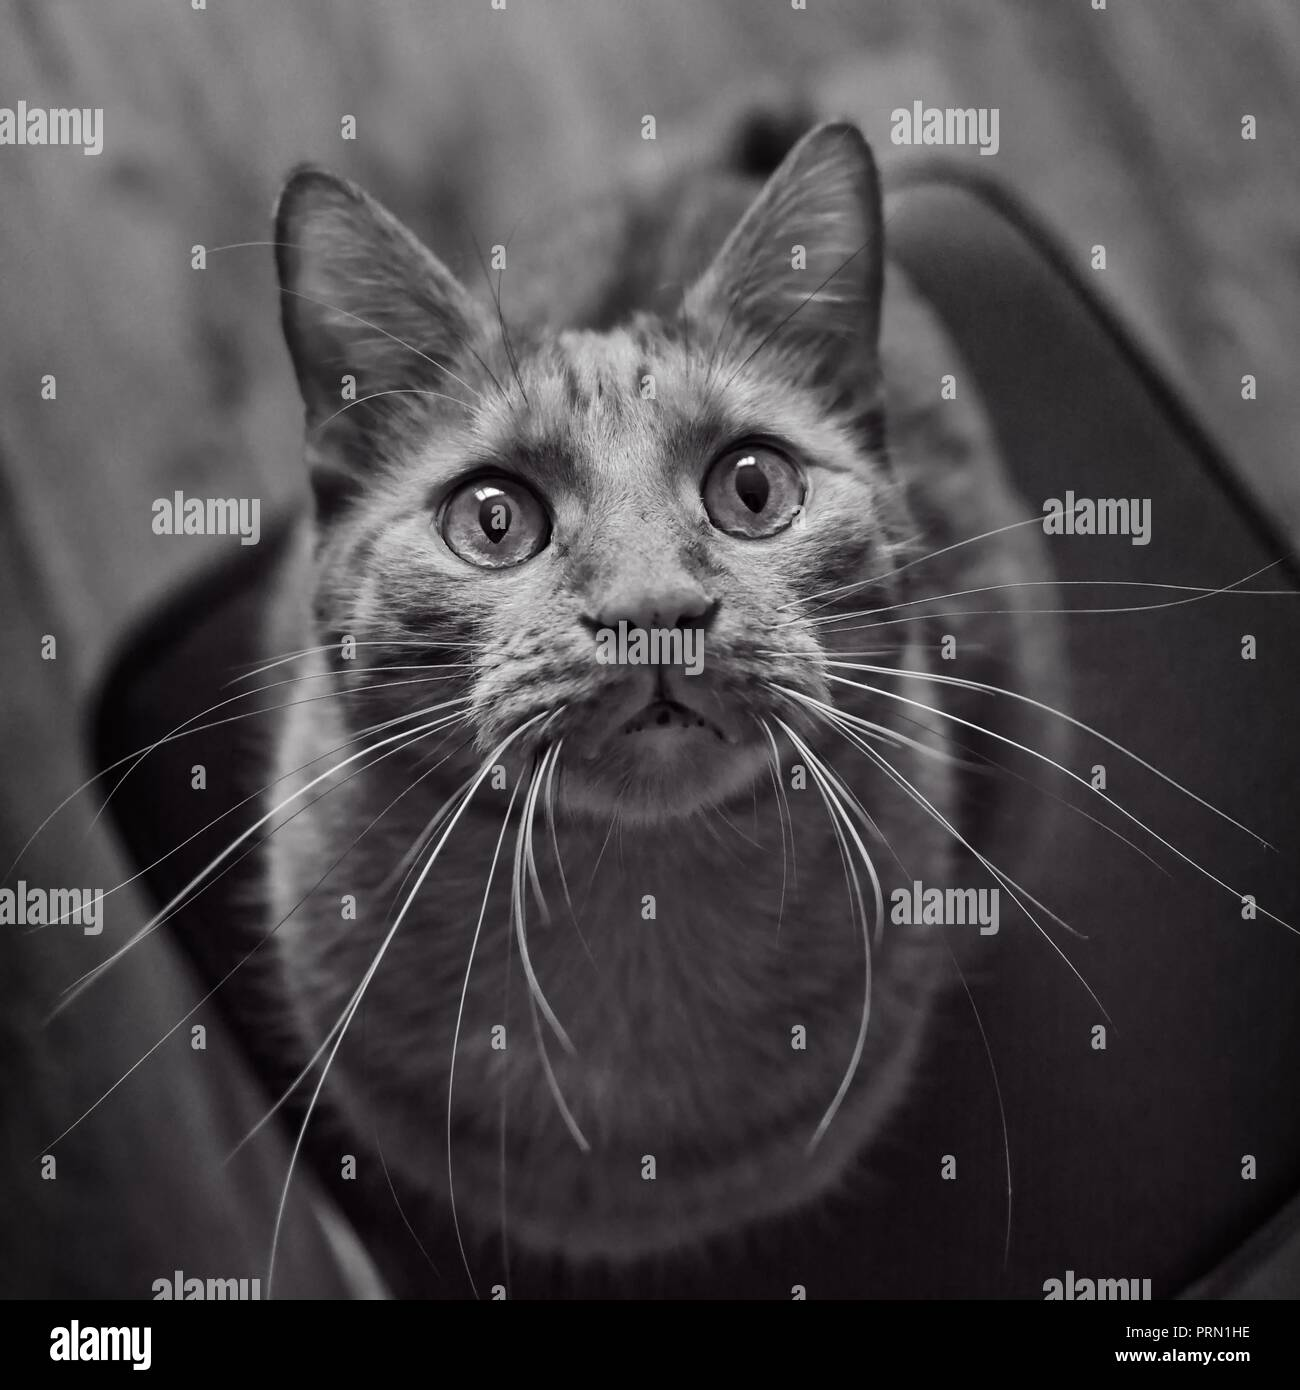 Cute tabby cat looking curious up to the camera. Black and white portrait. - Stock Image